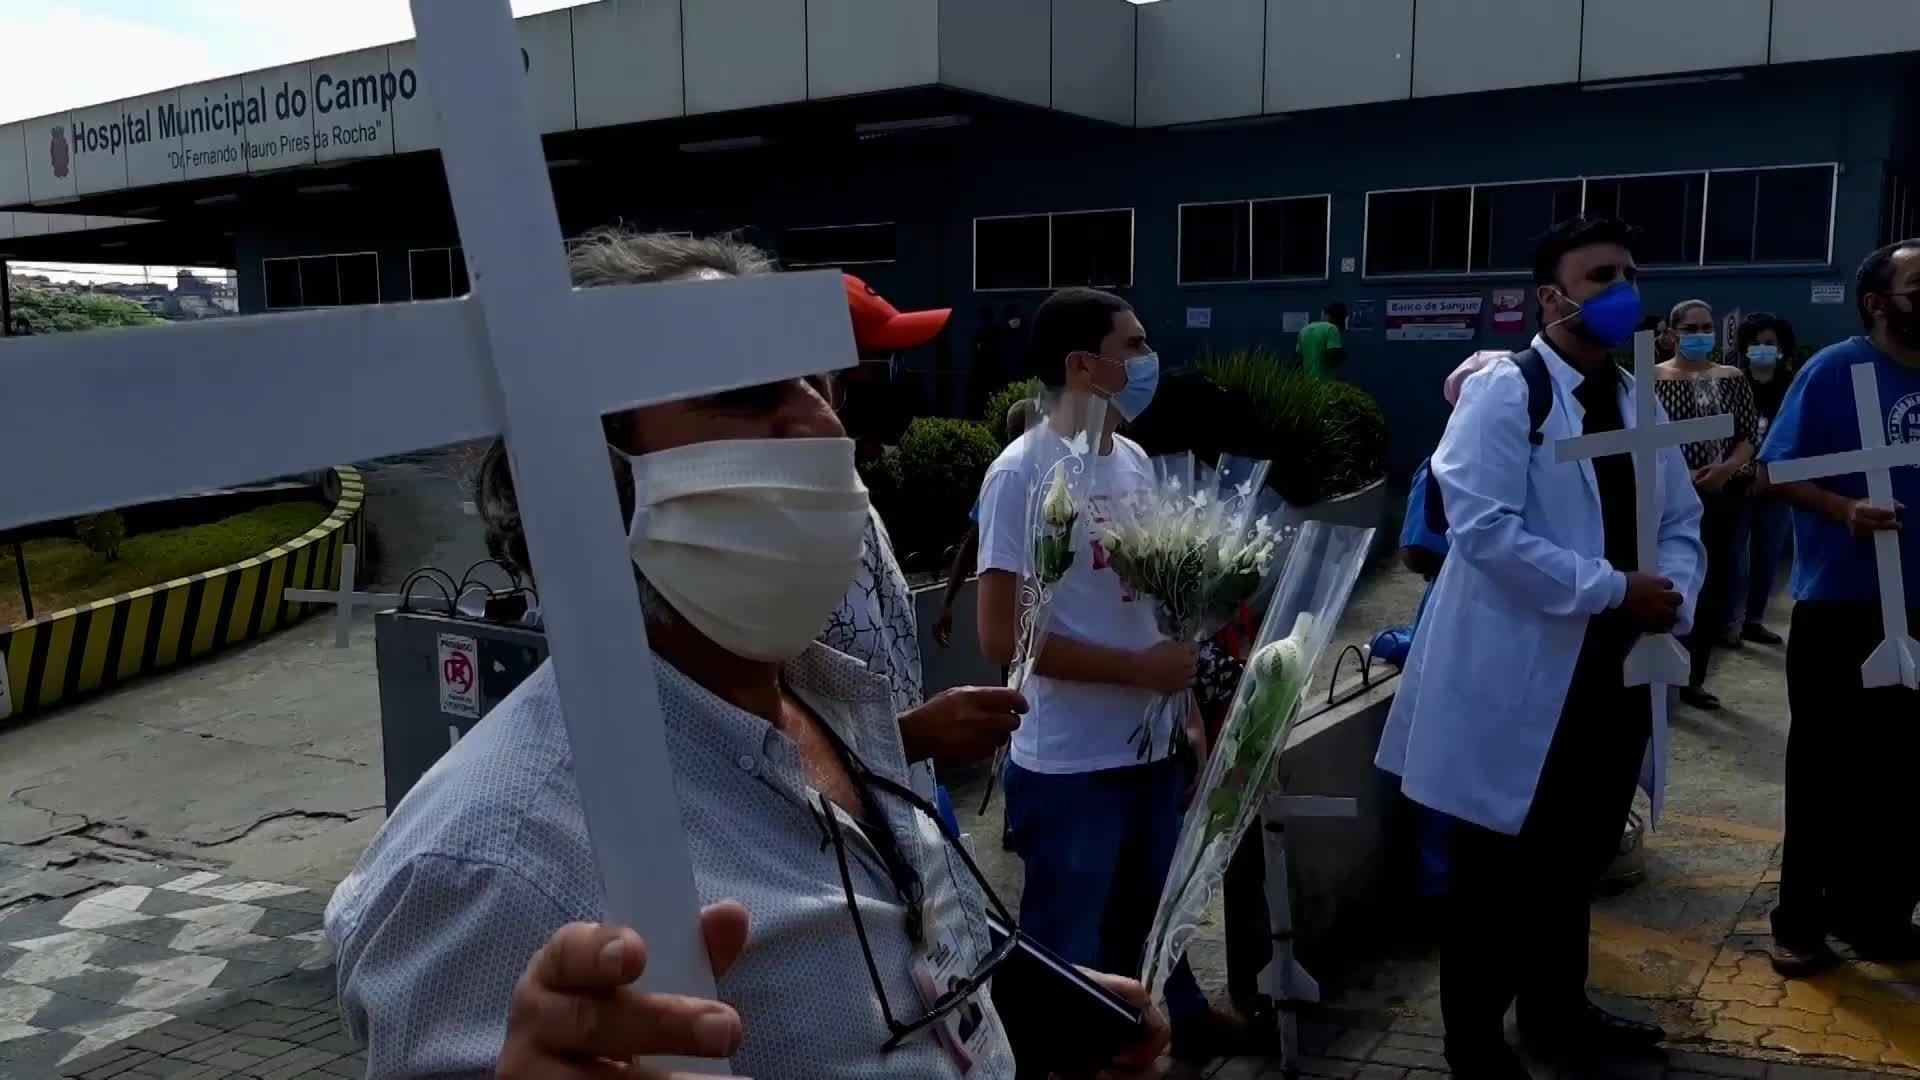 Brazil Health workers protest working conditions outside